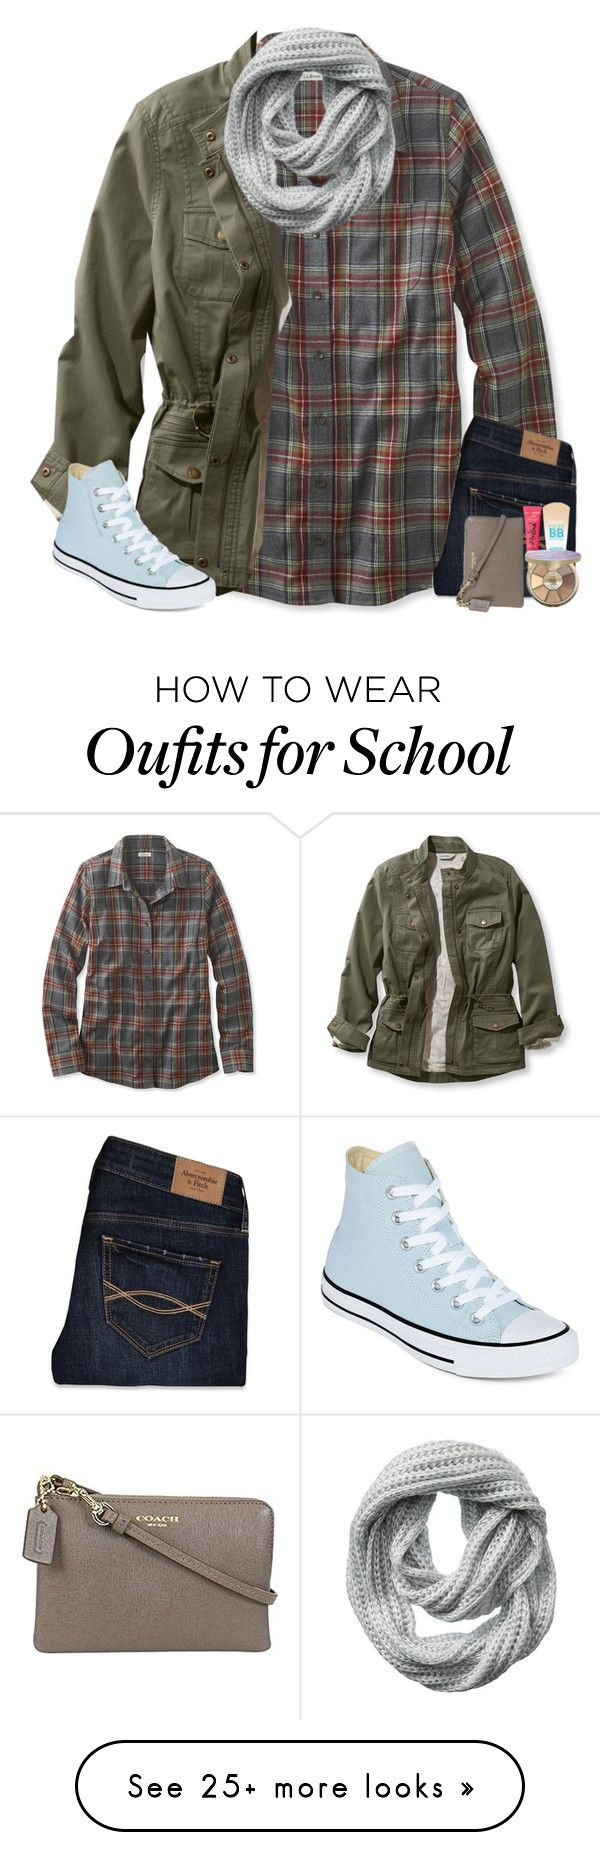 """we got out of school for sickness "" by simply-positive-prep on Polyvore featuring L.L.Bean, Vincent Pradier, Converse, Abercrombie & Fitch, Maybelline, tarte, Coach and plus size clothing"